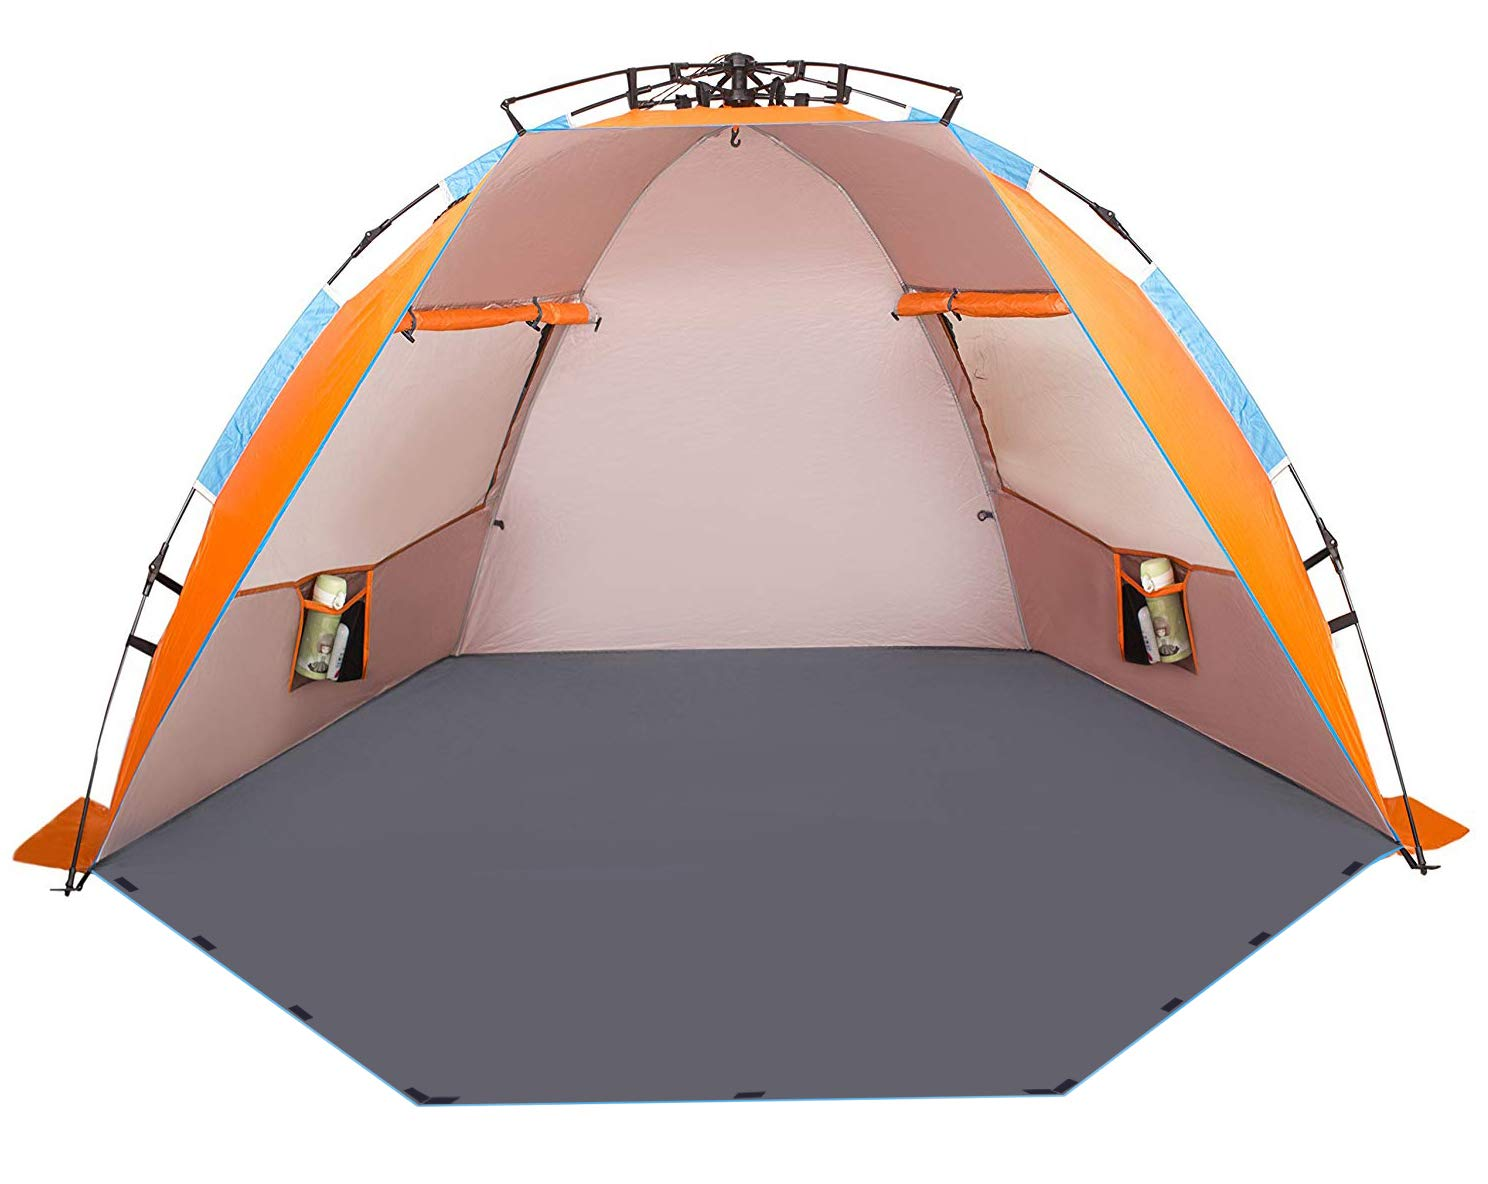 Oileus X-Large 4 Person Beach Tent Sun Shelter - Portable Sun Shade Instant Tent for Beach with Carrying Bag, Stakes, 6 Sand Pockets, Anti UV for Fishing Hiking Camping, Waterproof Windproof